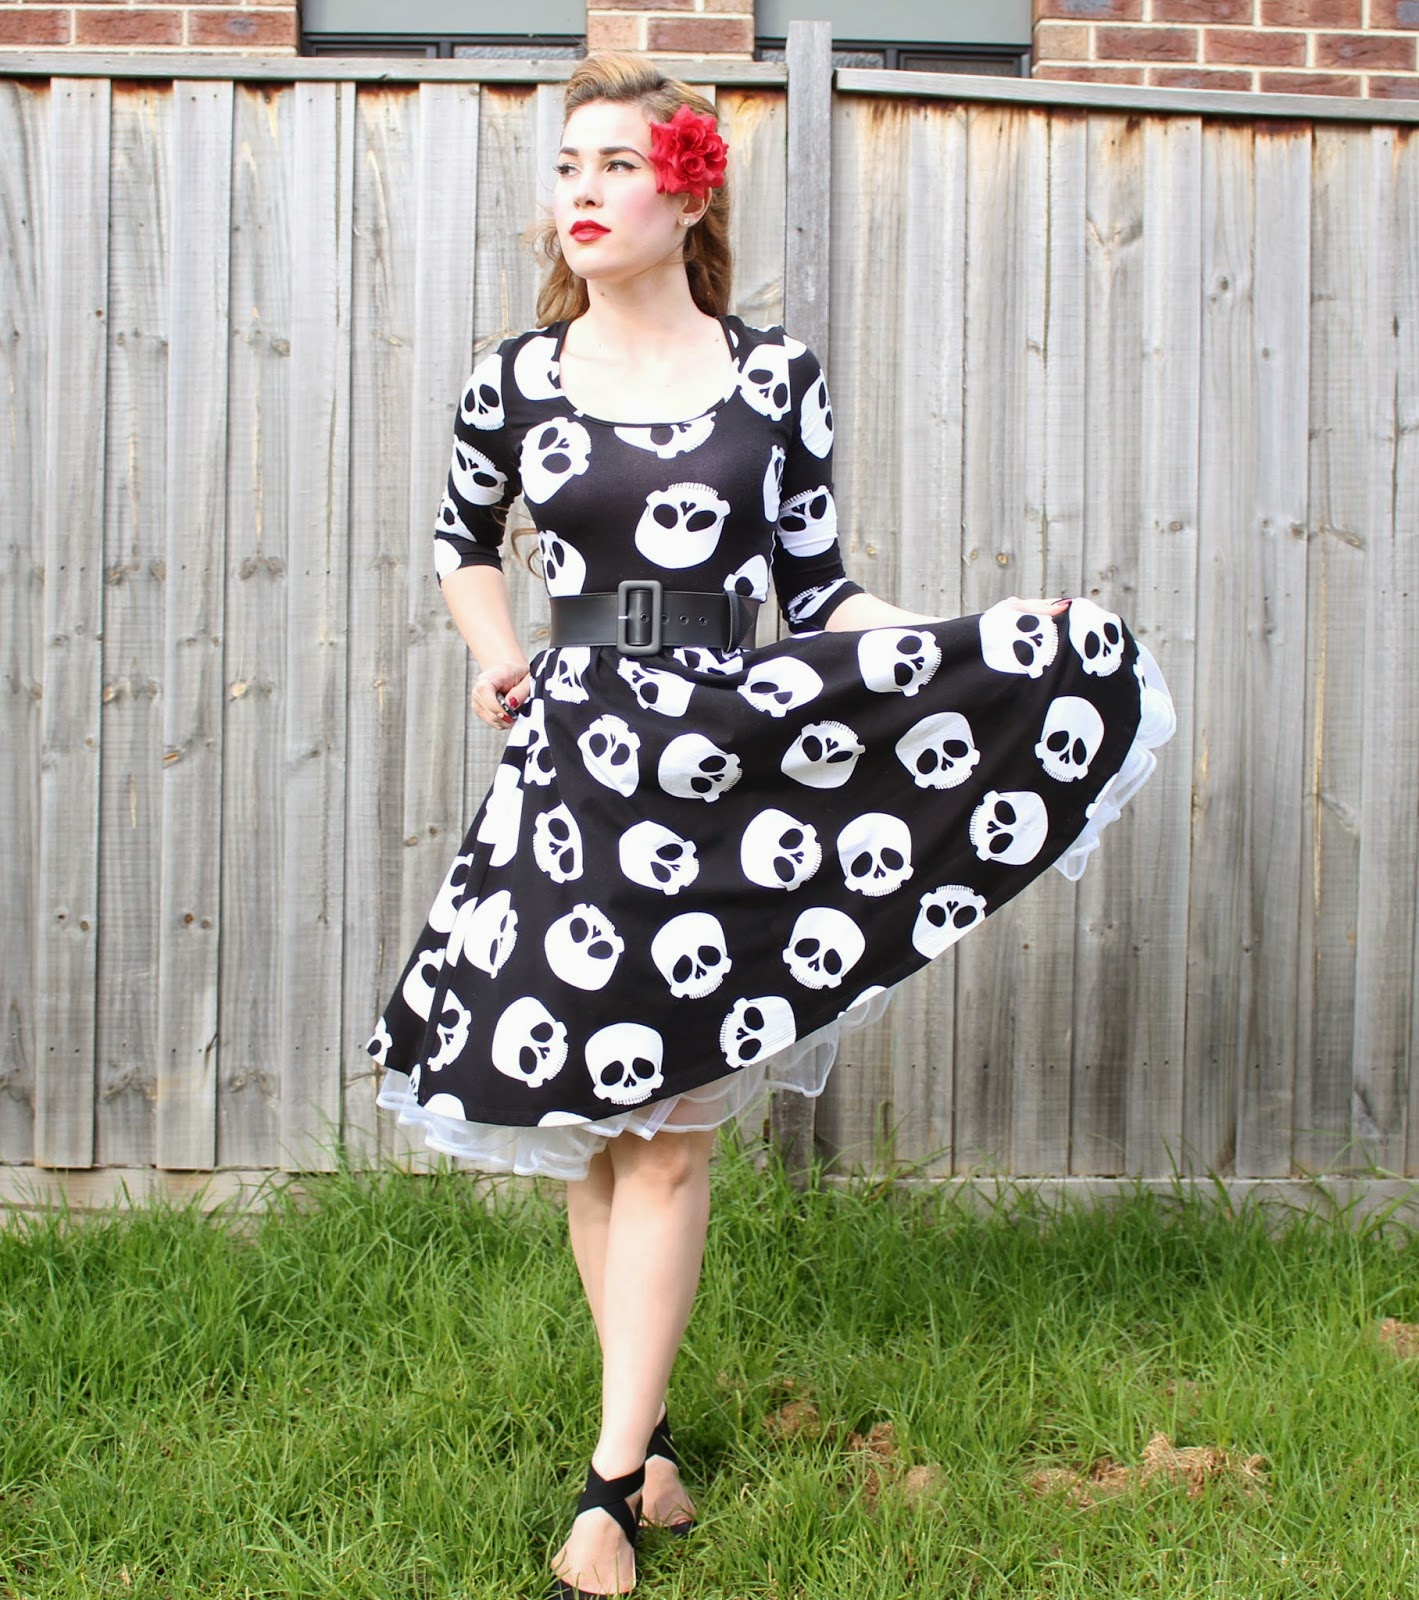 Hotrod Honey Swing Dress By Pinup Girl Clothing